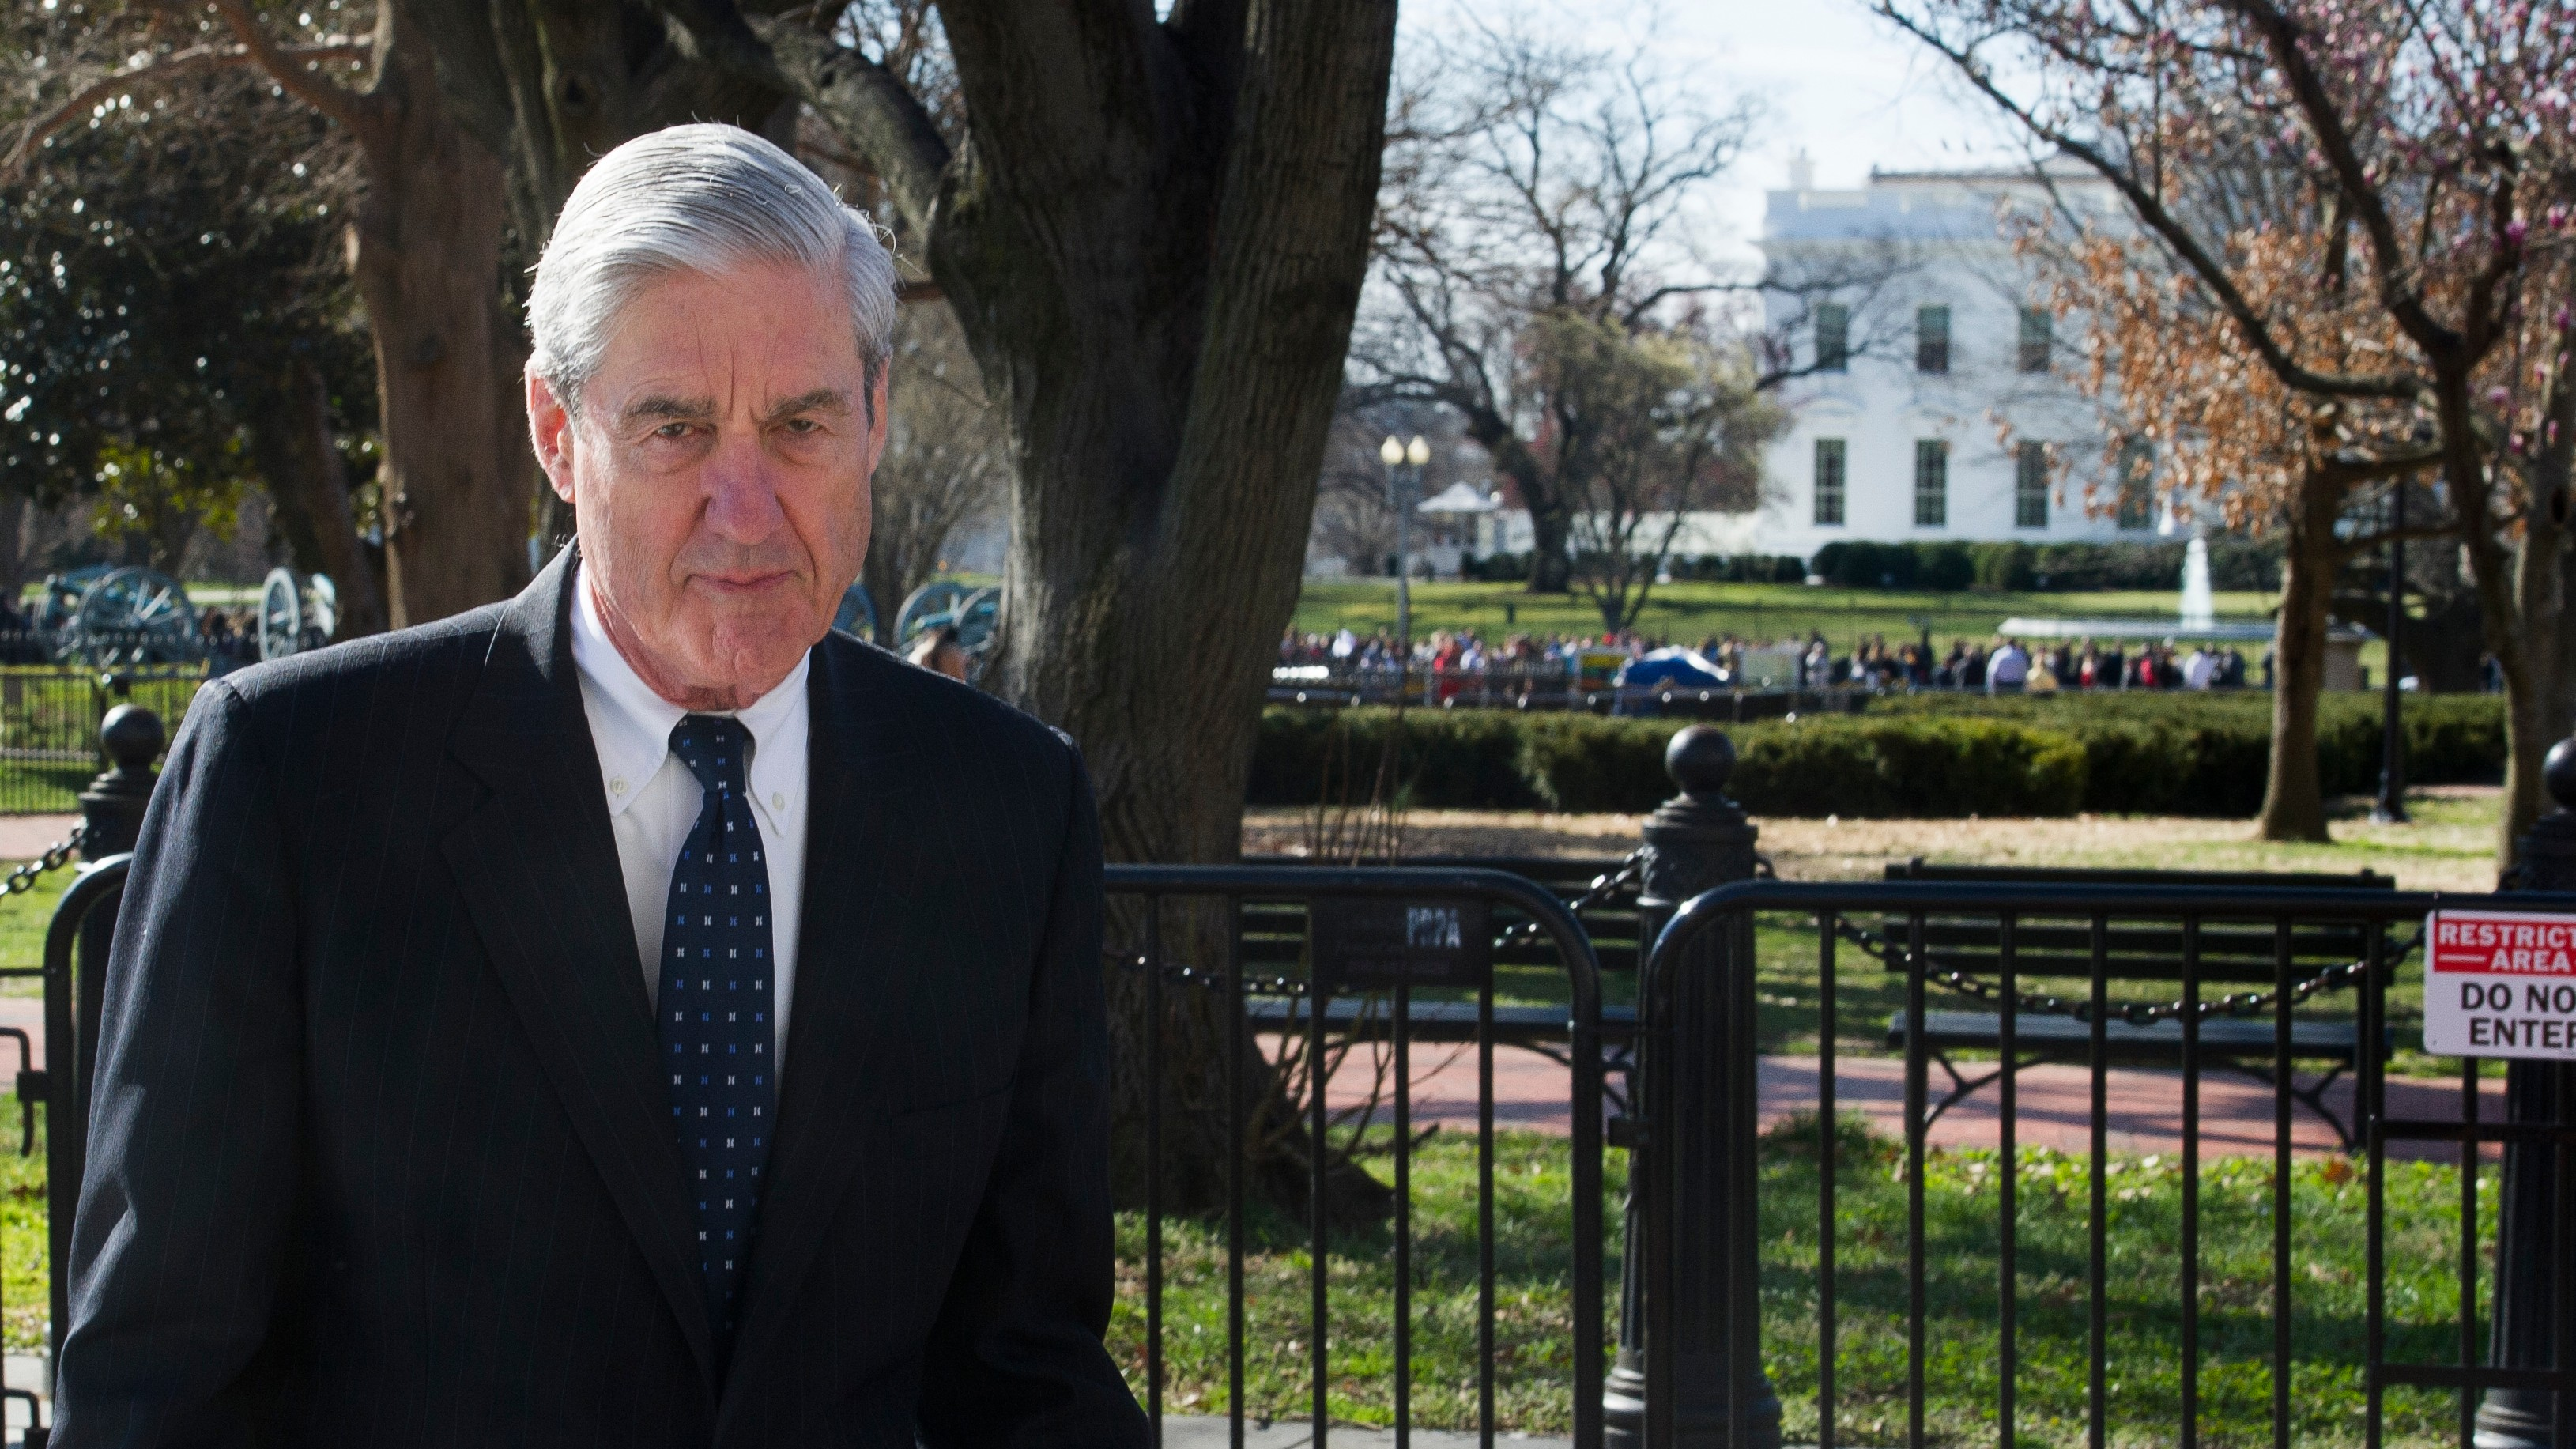 The Mueller report did not find that the Trump campaign conspired with Russia, attorney general says